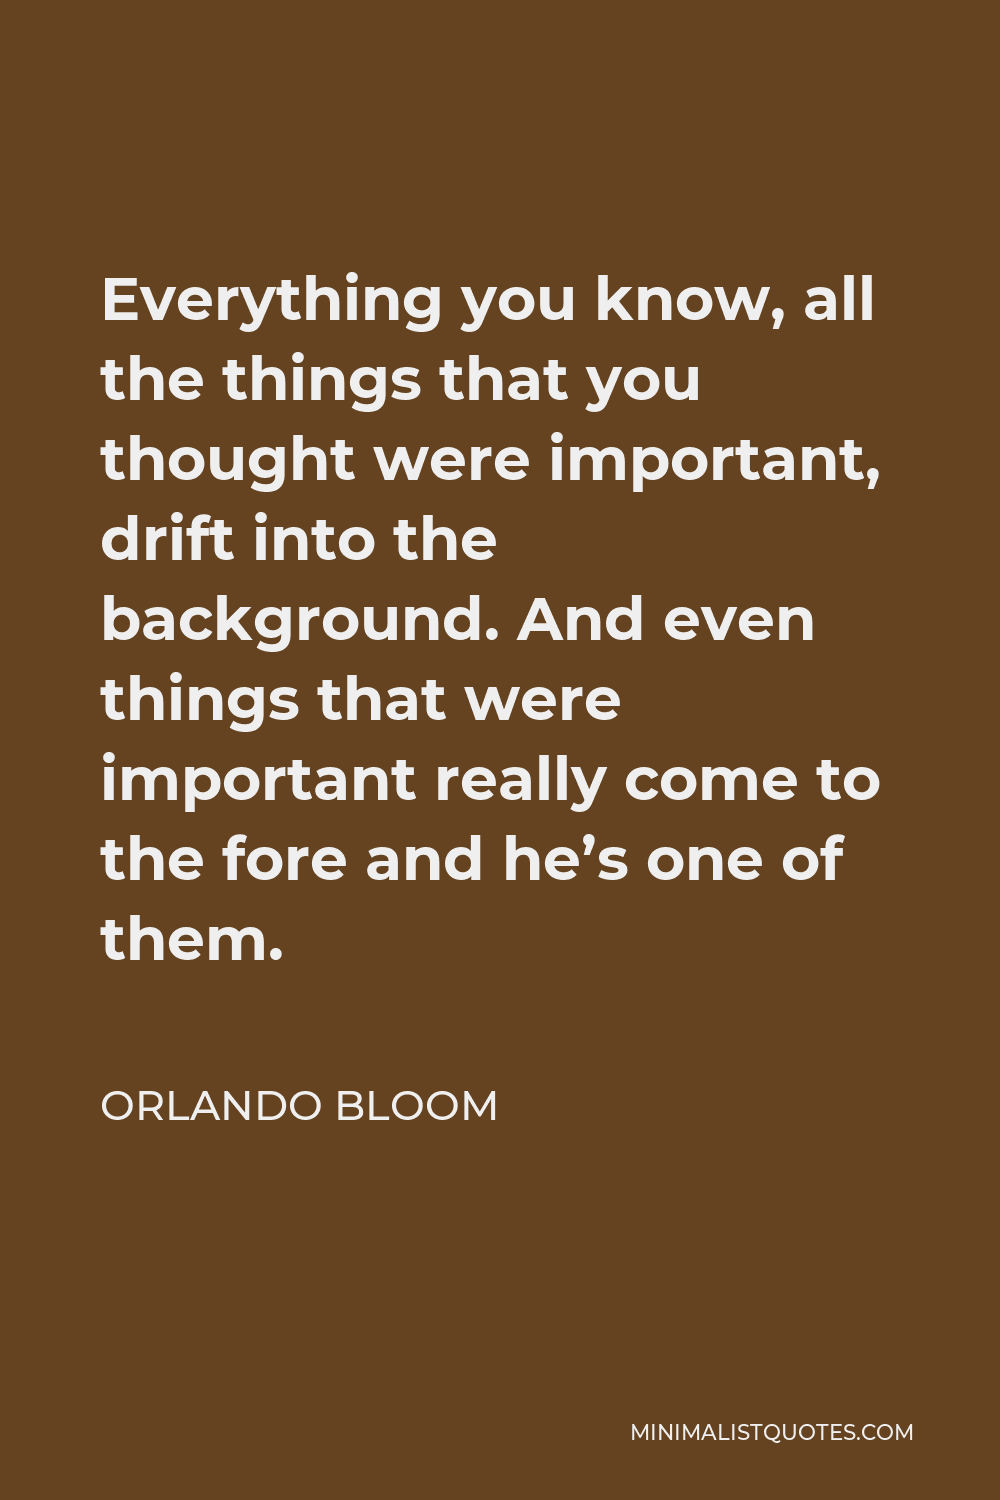 Orlando Bloom Quote - Everything you know, all the things that you thought were important, drift into the background. And even things that were important really come to the fore and he's one of them.